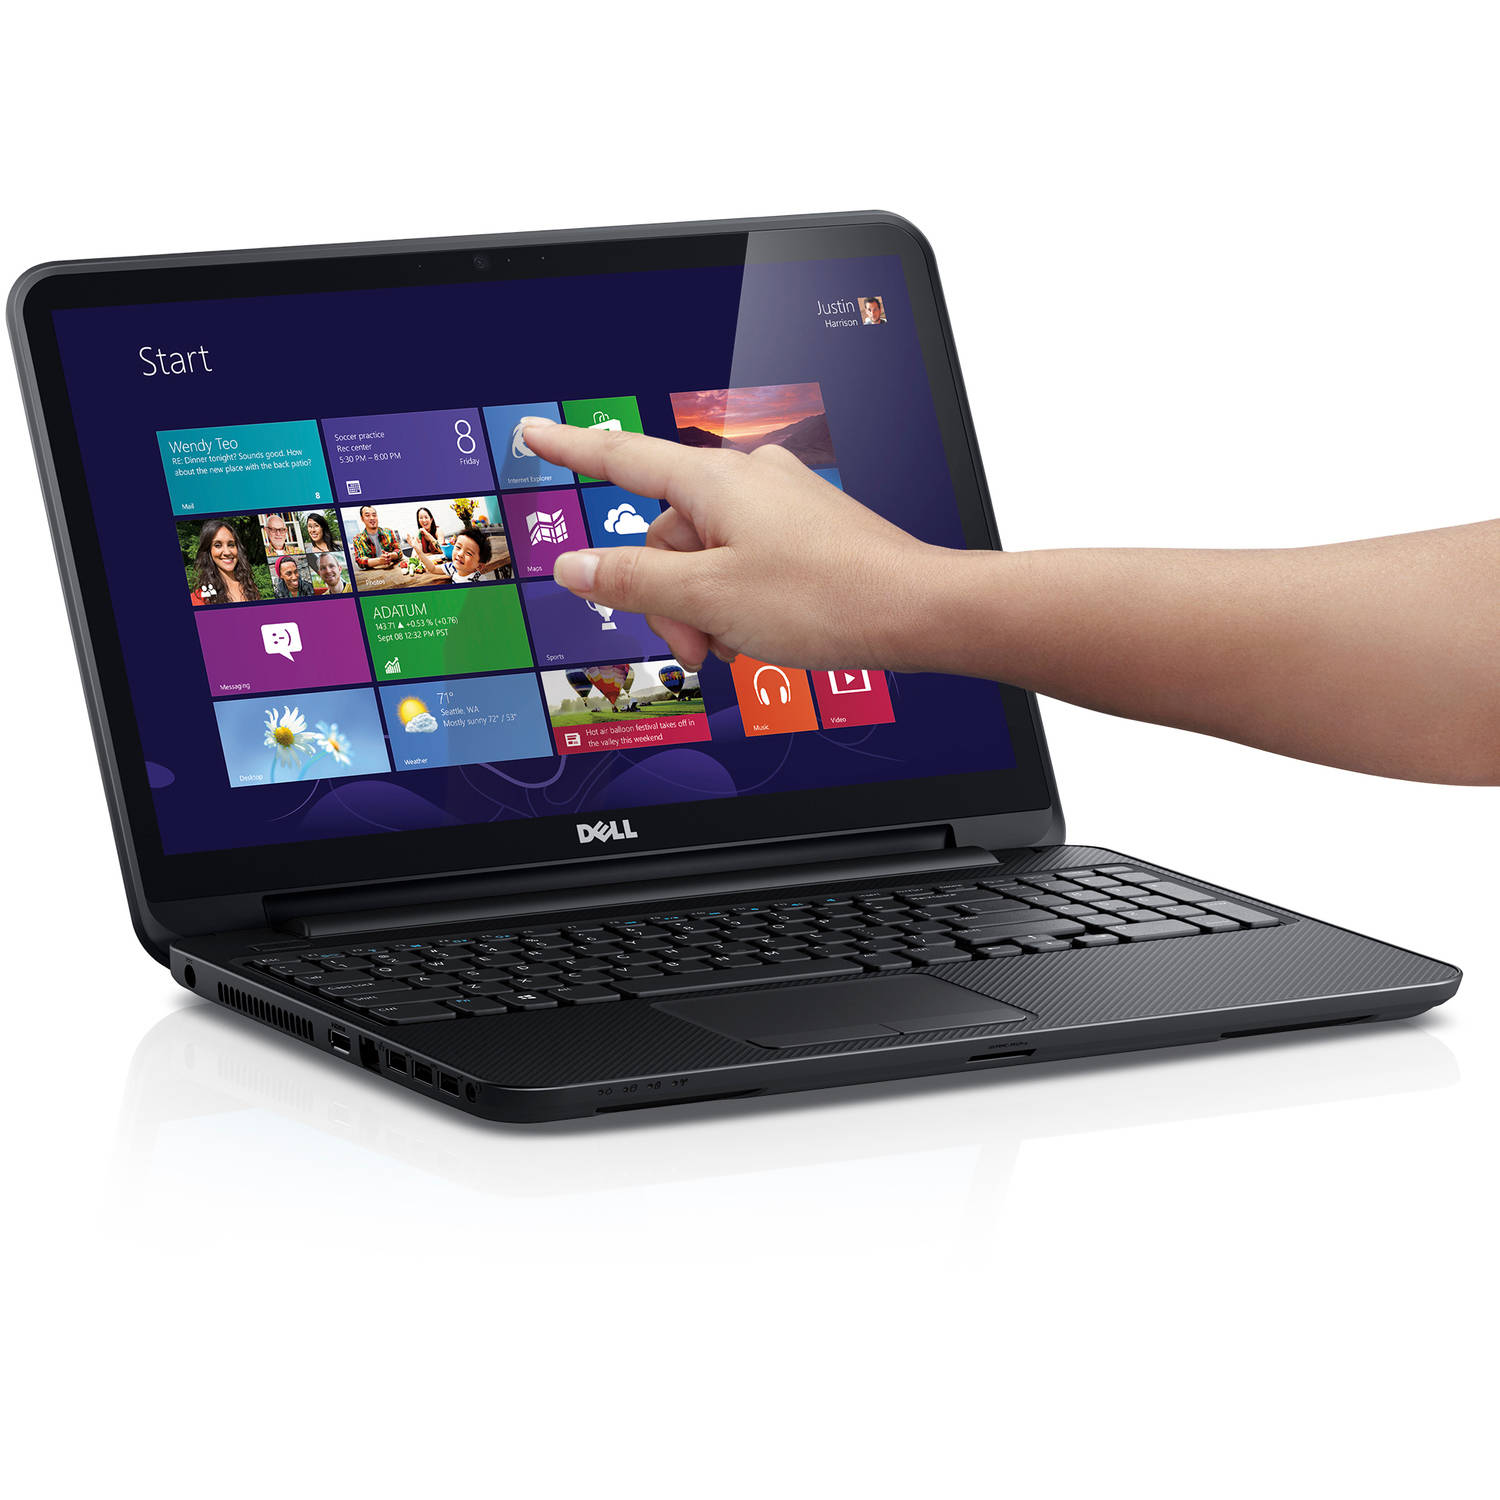 "Refurbished Dell Inspiron i15RVT-3714BLK 15.6"" Laptop, Touchscreen, Windows 8, Intel Pentium 2127U Processor, 4GB RAM, 500GB Hard Drive"